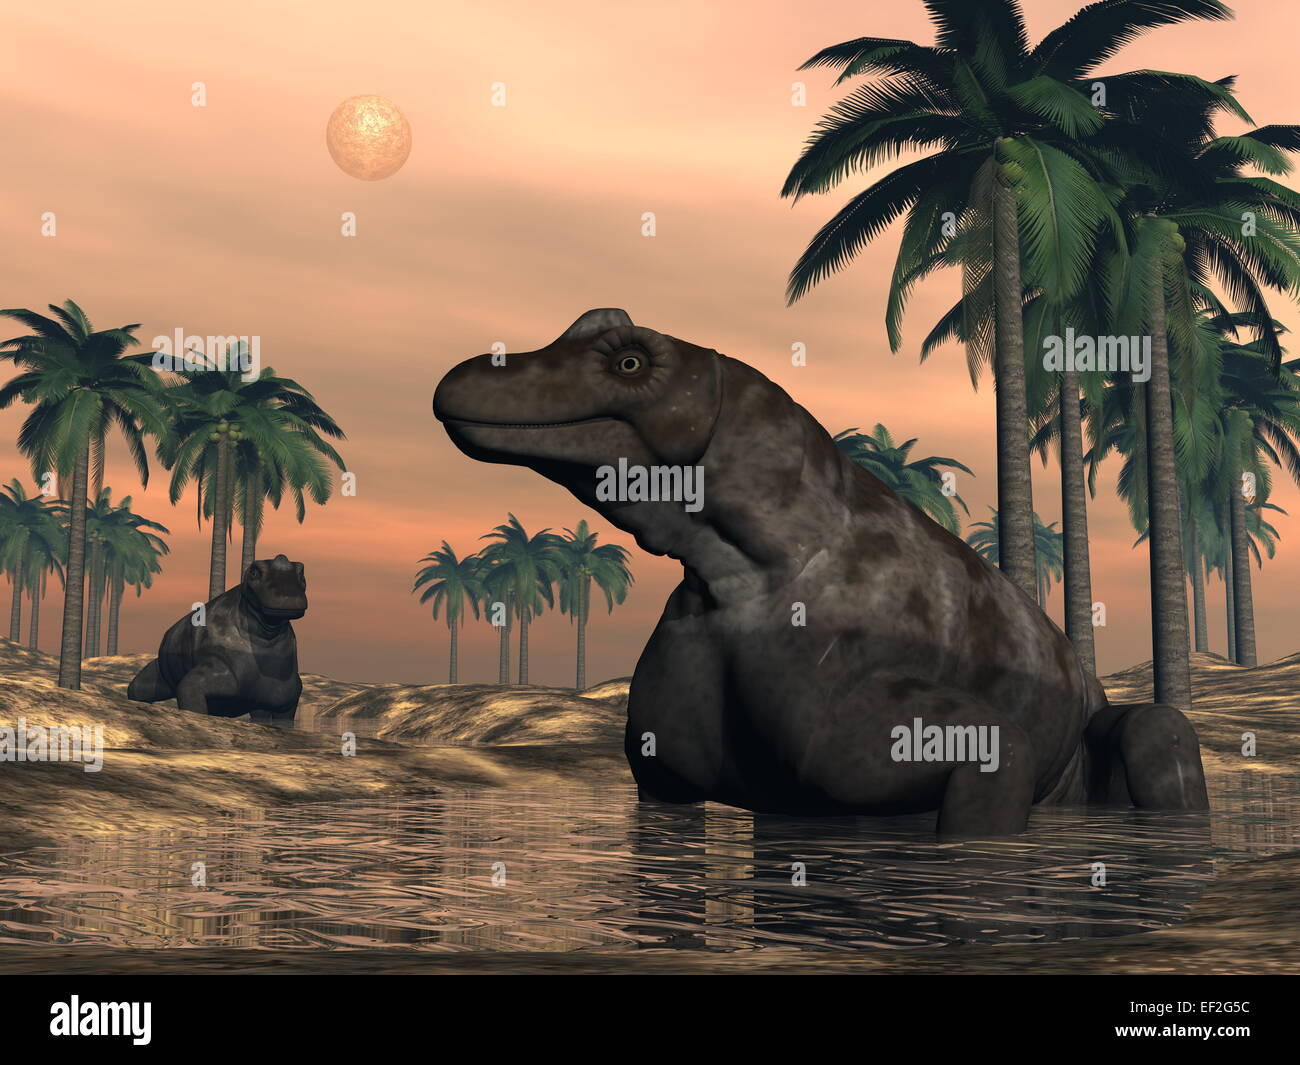 Keratocephalus dinosaurs having bath in the desert with palm trees - 3D render - Stock Image